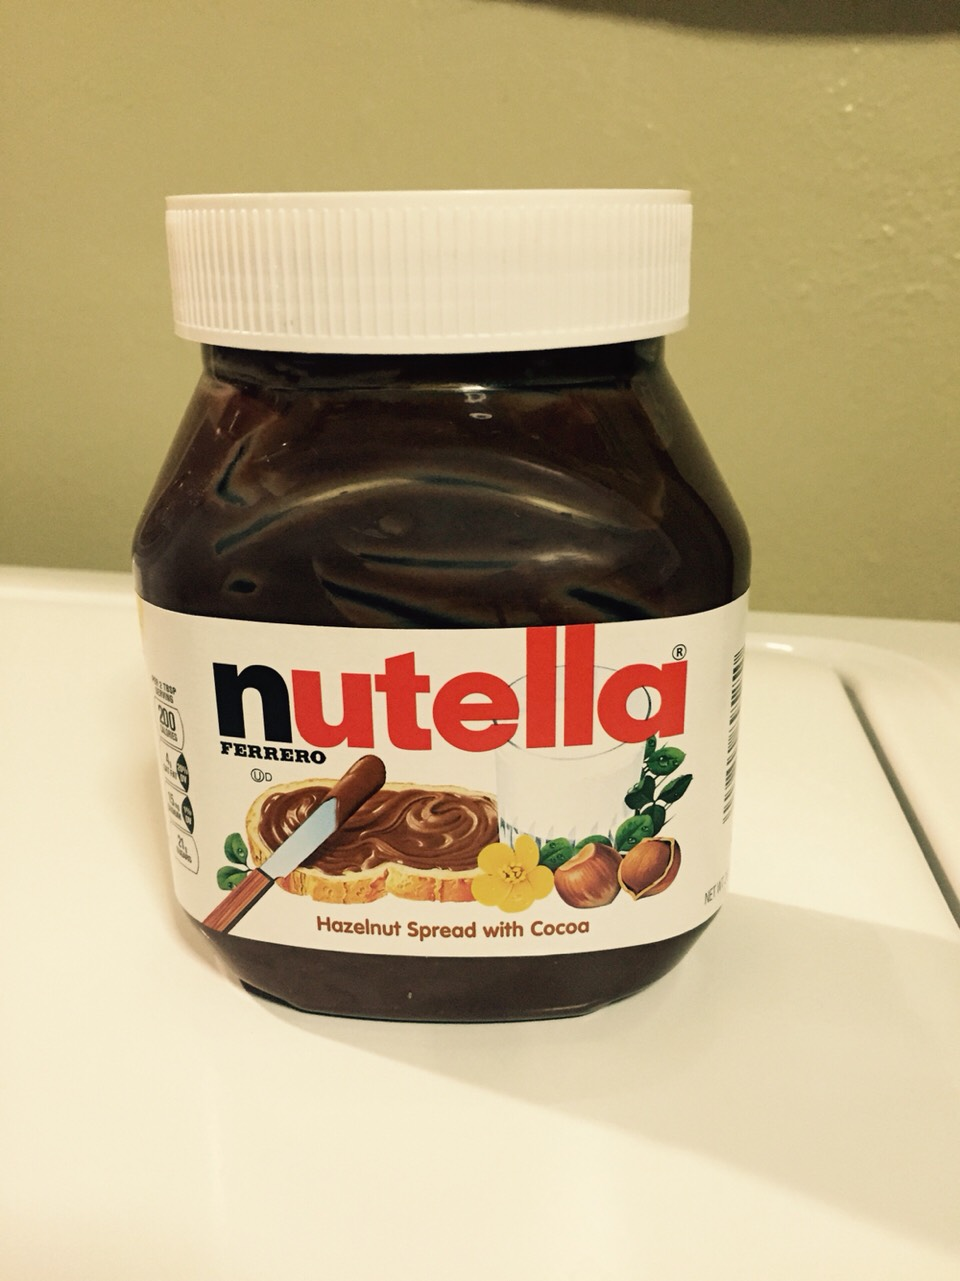 Nutella... Of course.